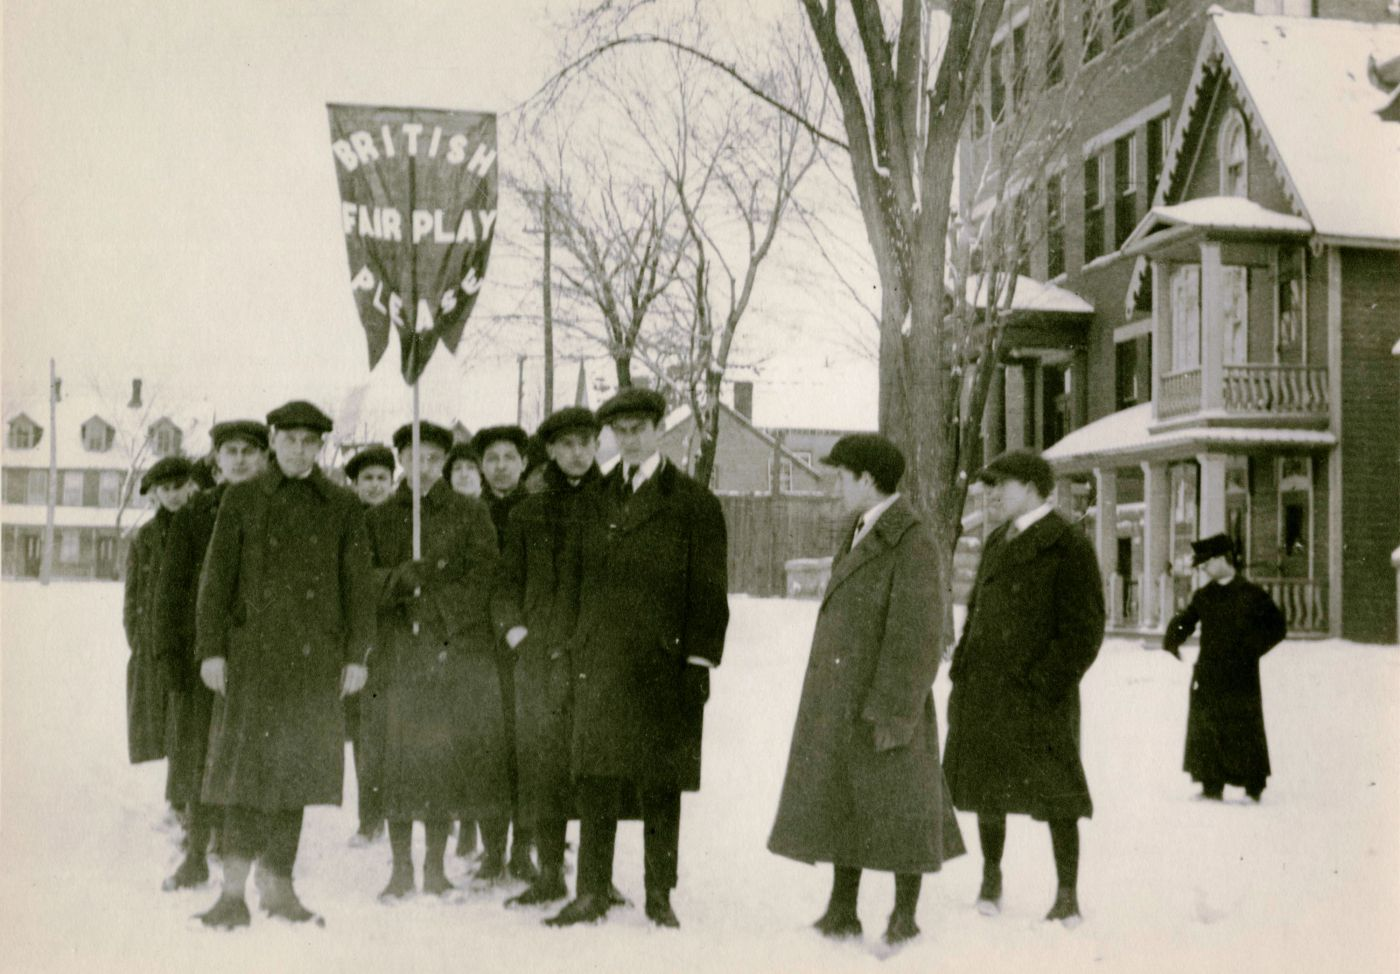 "A small group of people dressed in winter clothing stand outside, in the snow in an open space surrounded by brick buildings and trees. One of the group members holds a flag with English text reading ""BRITISH FAIR PLAY PLEASE"" in capital letters."